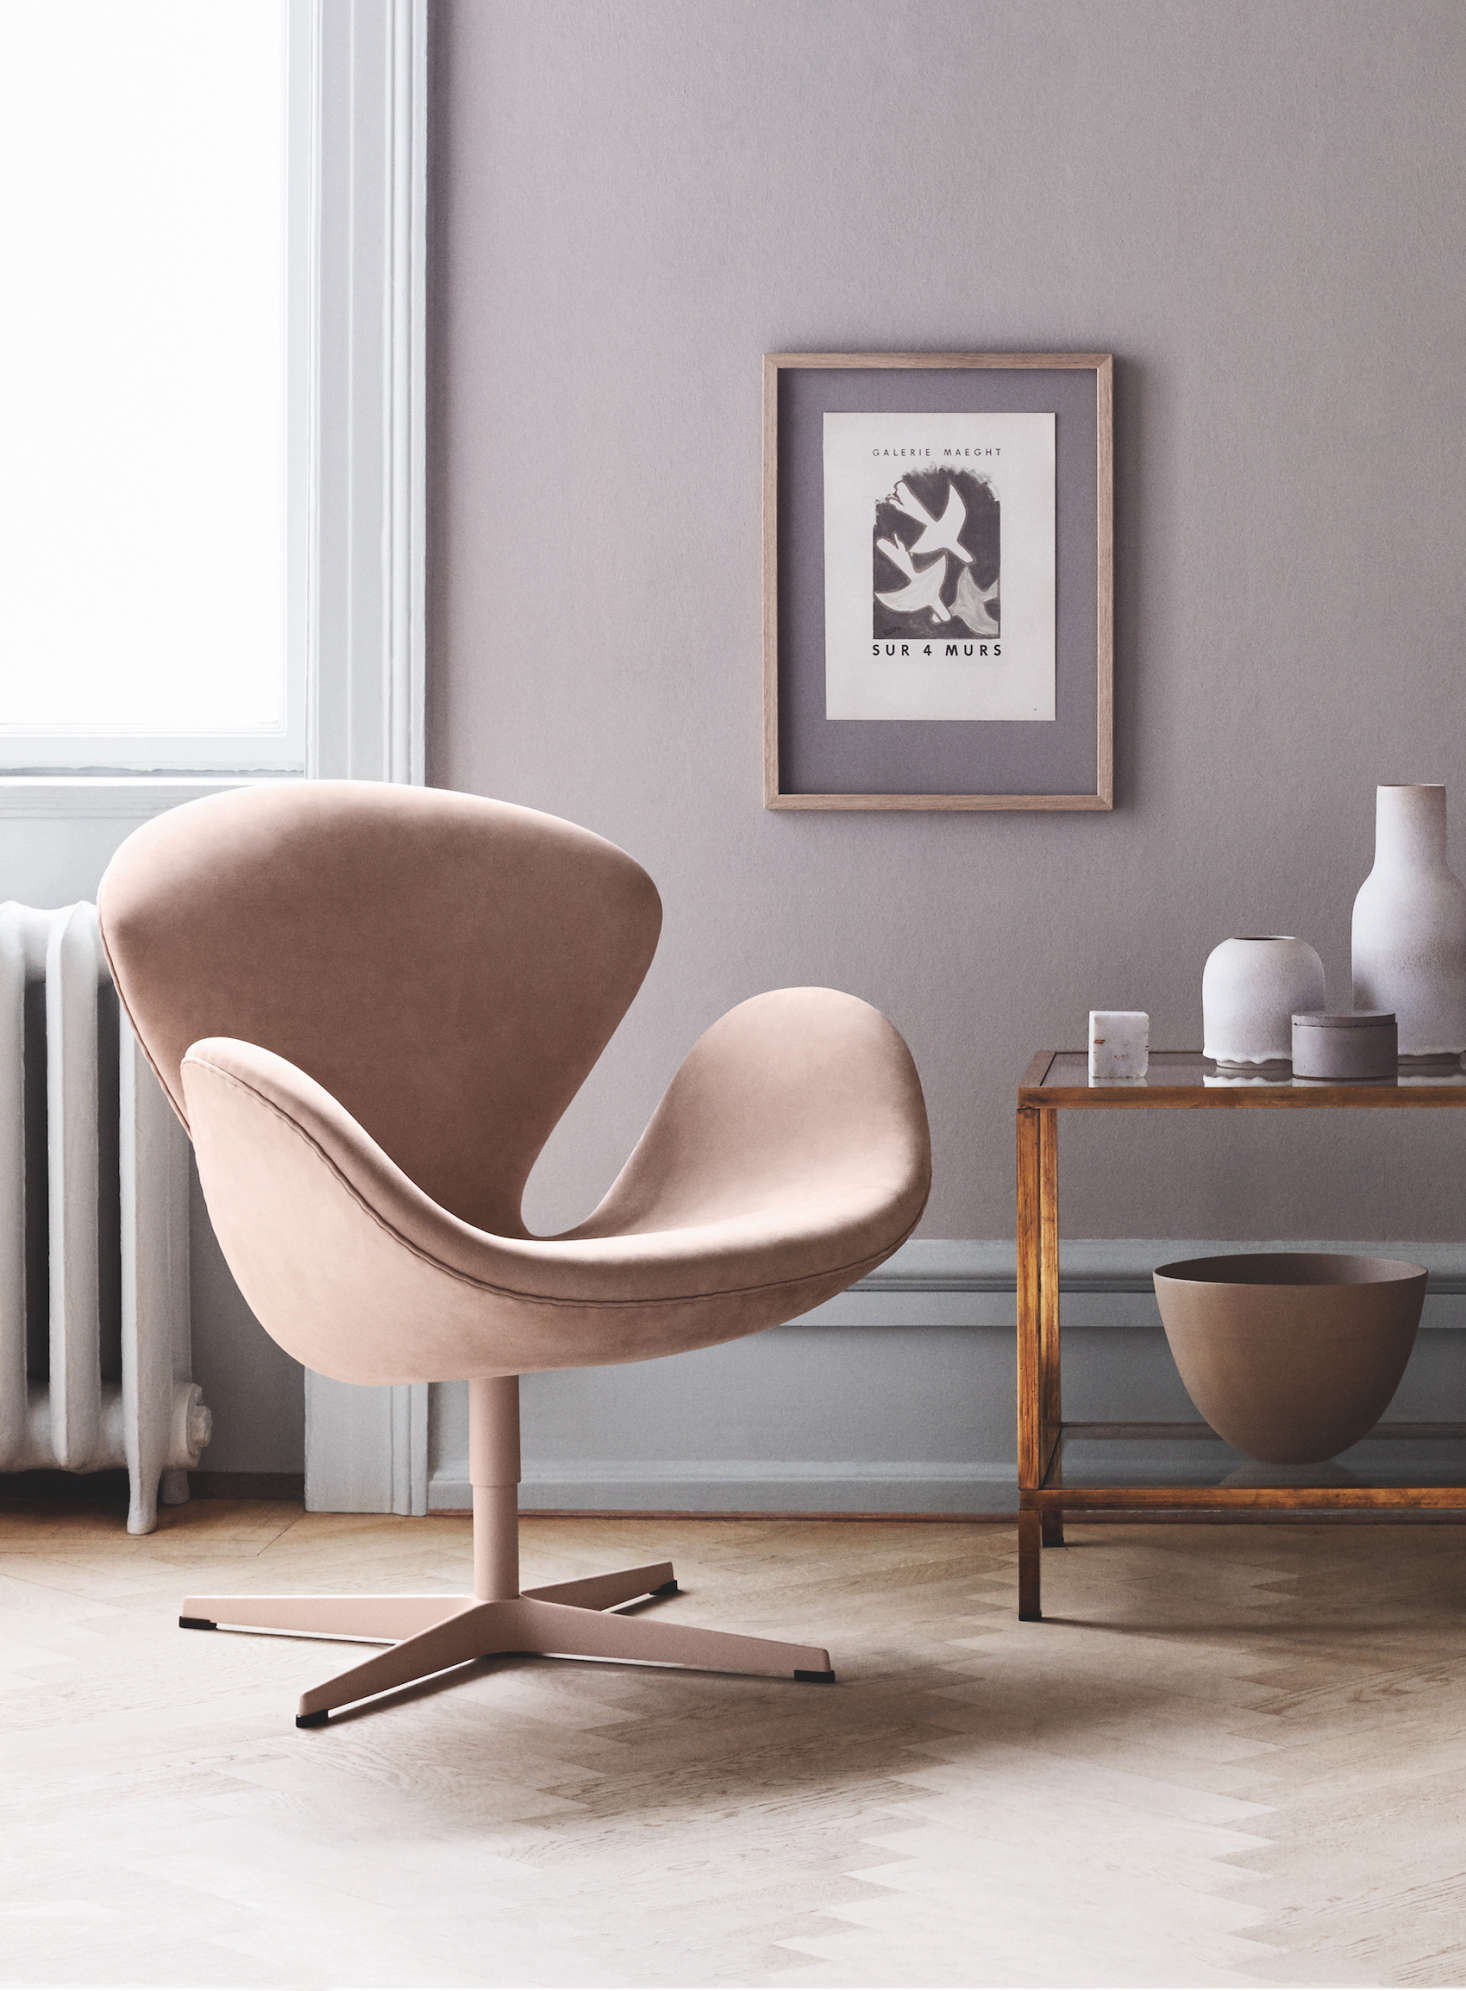 Instantly Recognizable: The Swan Chair, Shown In Pale Pink, Designed By  Arne Jacobsen